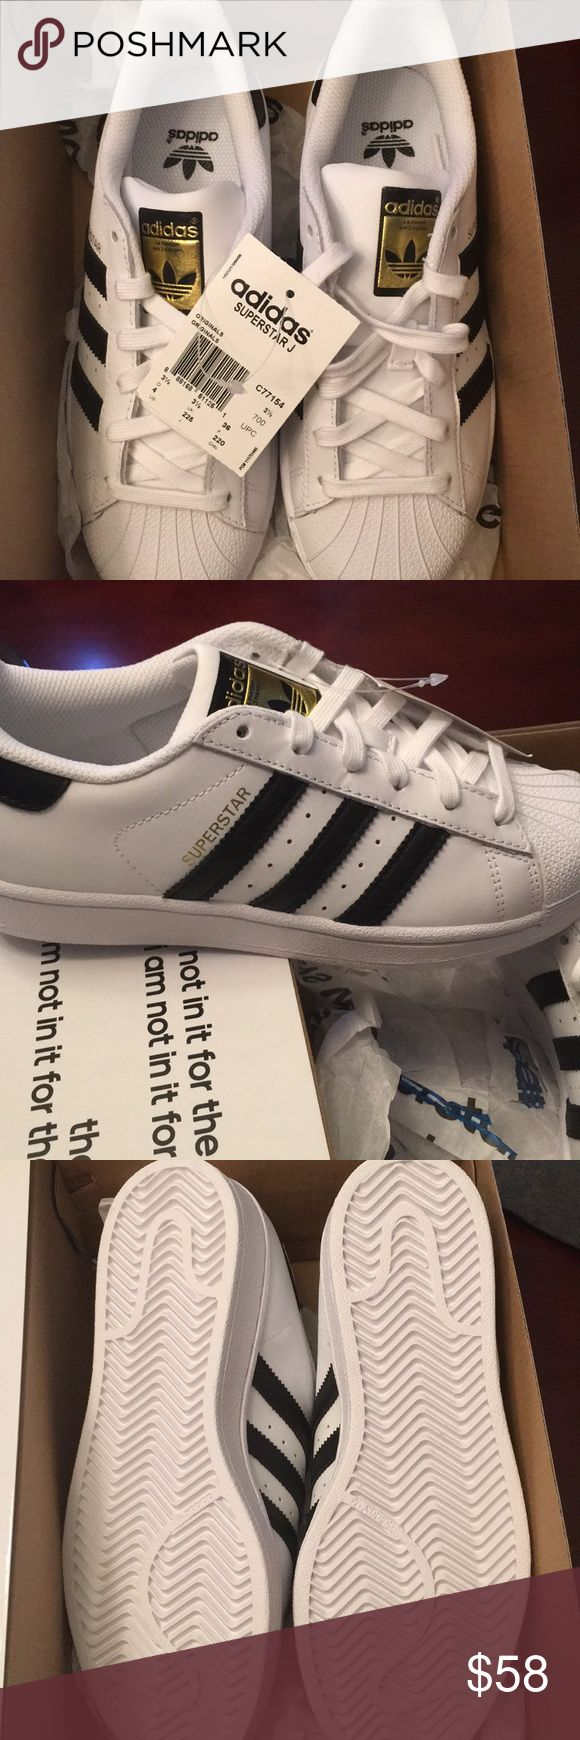 NEW WITH TAG Adidas superstars These are brand new, in perfect condition. These are a men's size 4 which is equivalent to a women's size 5.5 or 6. These are perfect and would make a GREAT Christmas present. Size was just too small for my daughter. I will ship with original adidas box on same day as purchase! adidas Shoes